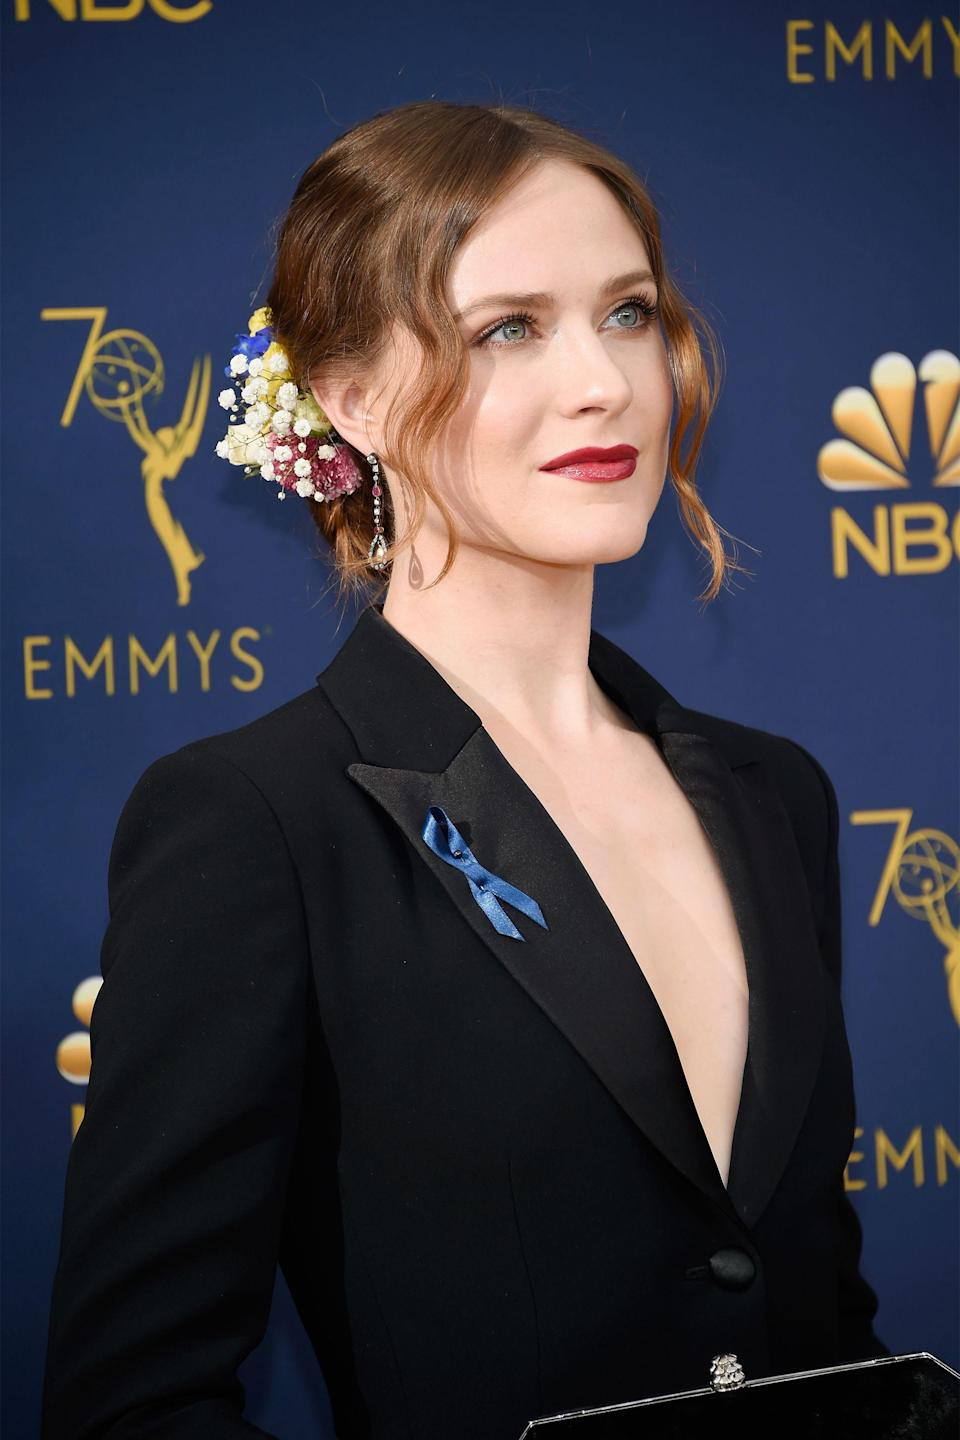 """<p>Evan Rachel Wood took a page out of <a href=""""https://www.refinery29.com/en-us/2018/09/209607/hair-accessories-from-nyfw#slide-8"""" rel=""""nofollow noopener"""" target=""""_blank"""" data-ylk=""""slk:Rodarte's NYFW show"""" class=""""link rapid-noclick-resp"""">Rodarte's NYFW show</a> with her floral-accented chignon, which was created by <a href=""""https://www.instagram.com/hairbyjohnd/"""" rel=""""nofollow noopener"""" target=""""_blank"""" data-ylk=""""slk:John D"""" class=""""link rapid-noclick-resp"""">John D</a> using ghd tools and fresh flowers.</p><span class=""""copyright"""">Photo: Kevin Mazur/Getty Images. </span>"""